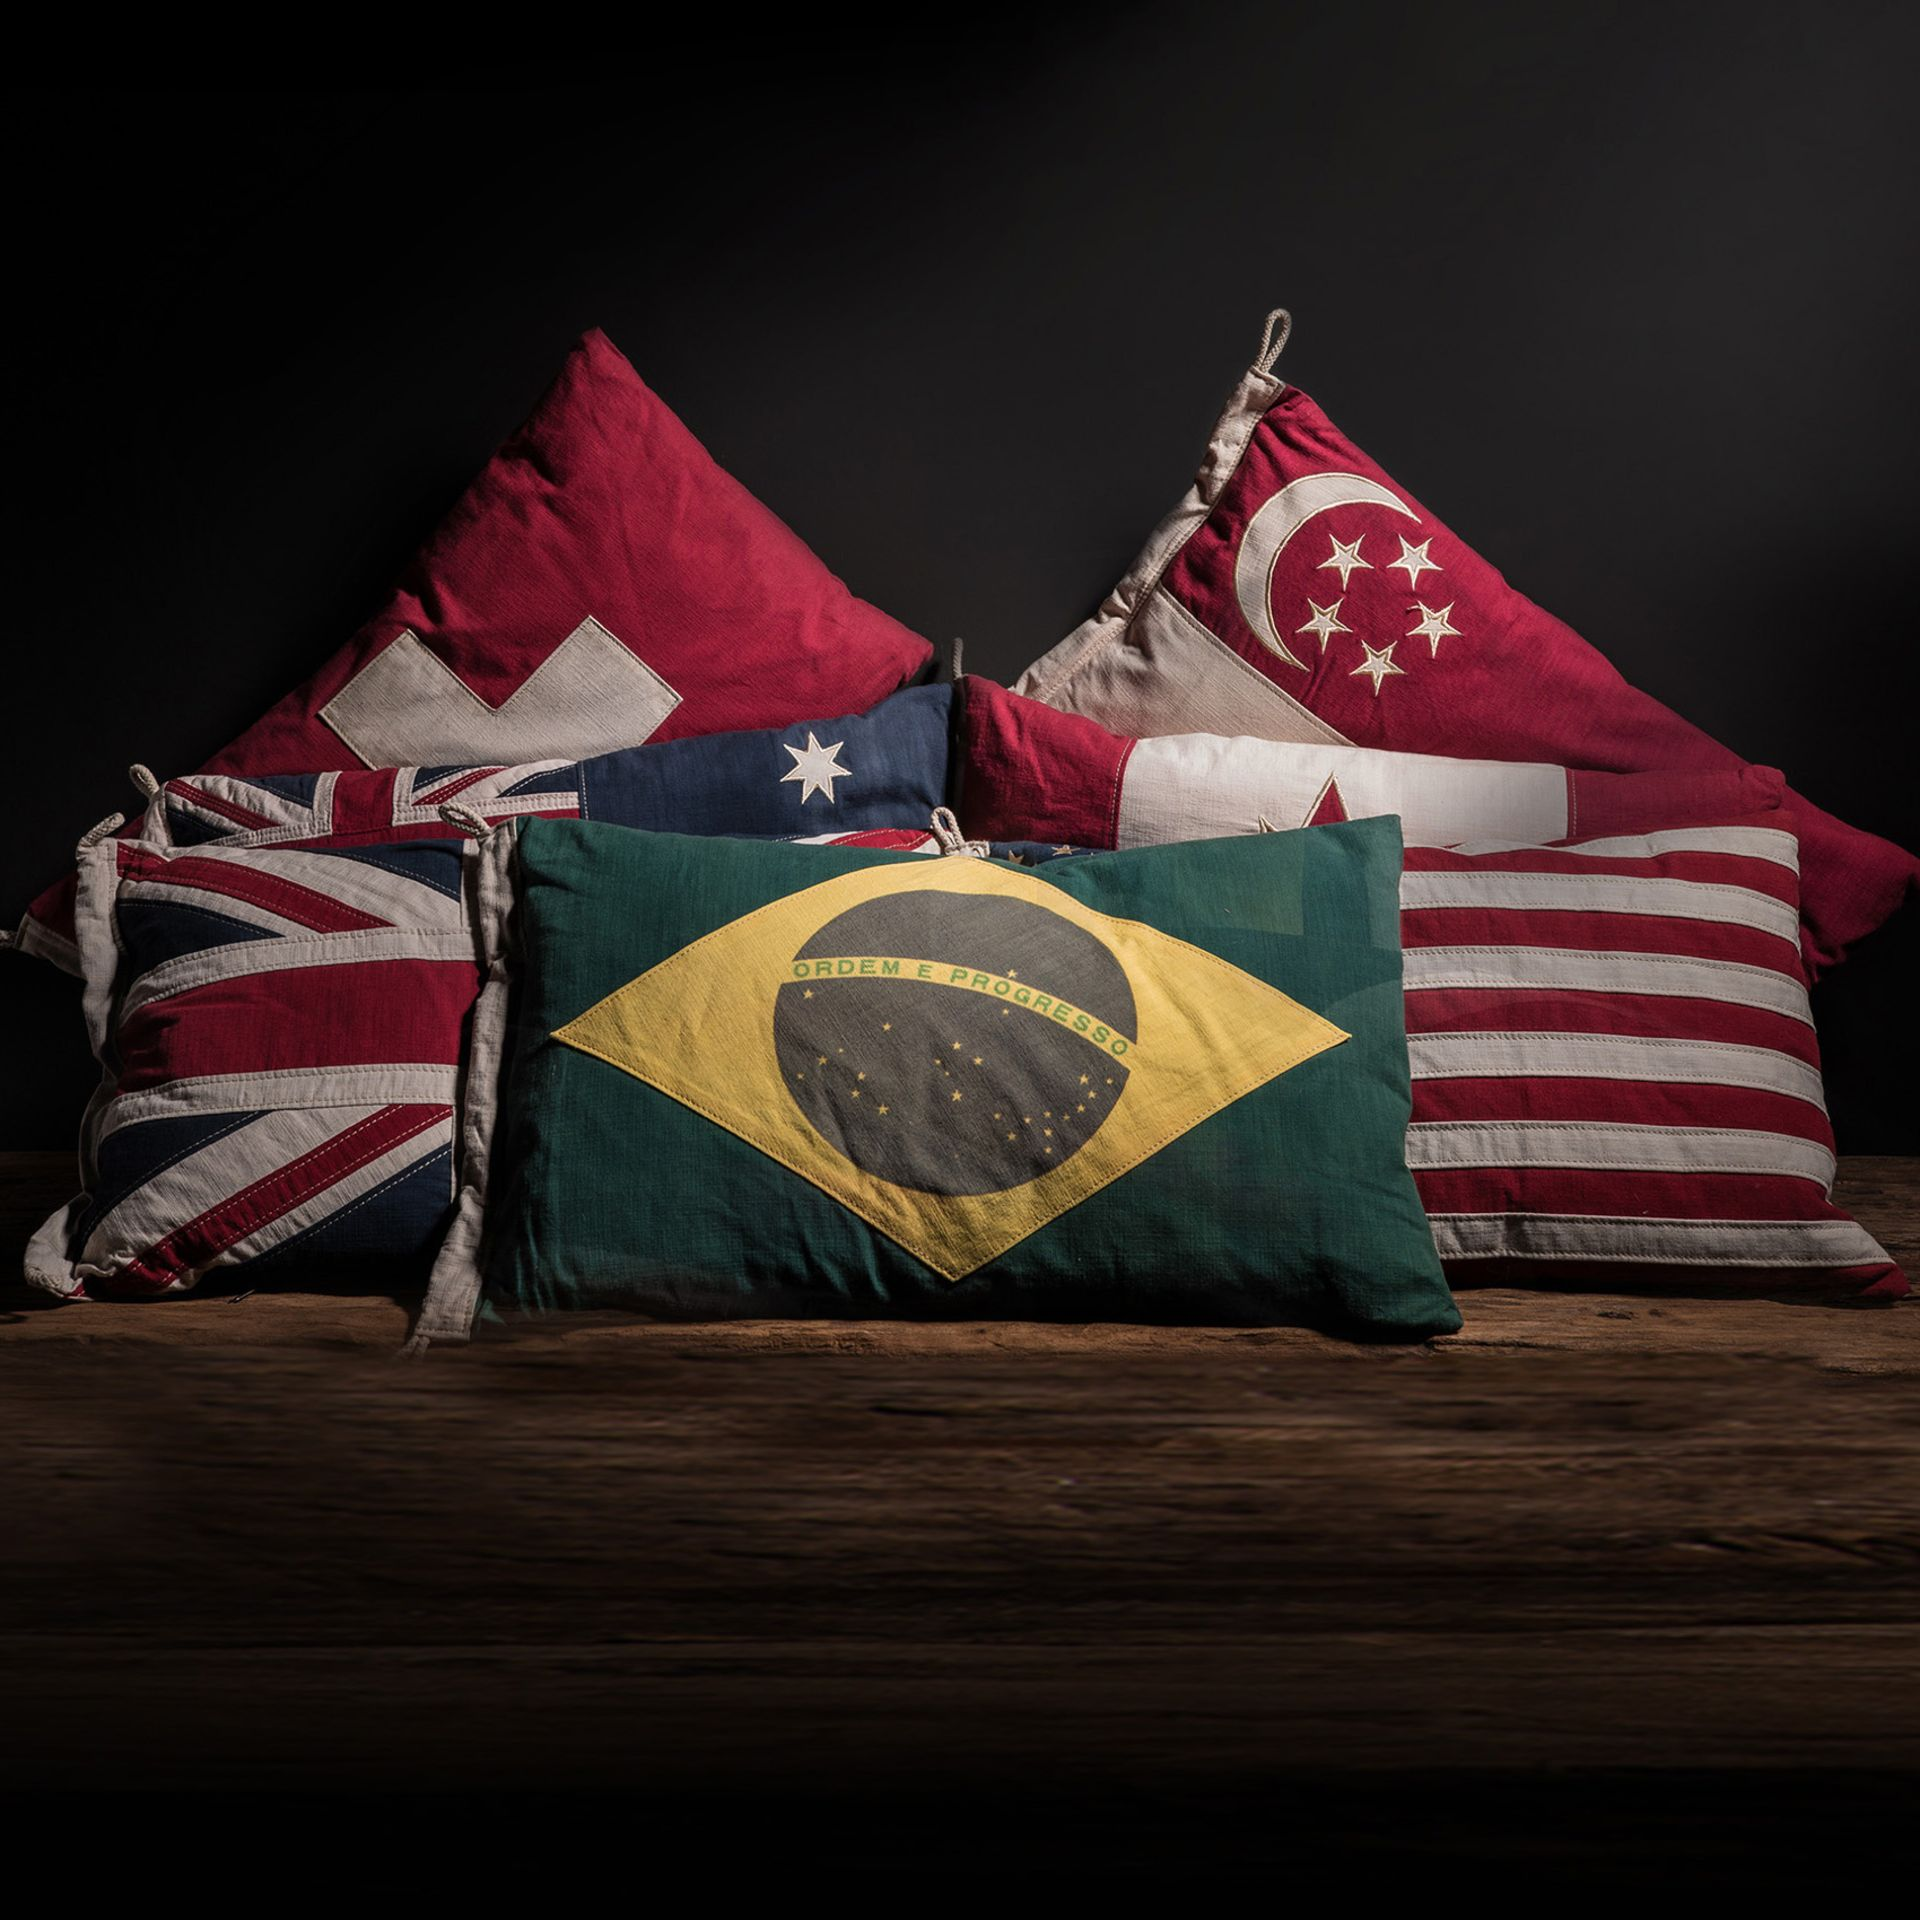 Lot 27 - Flag Cushion Brazil Flags Enable Bold Statements On Affiliations Roots Origin History Or Aspirations